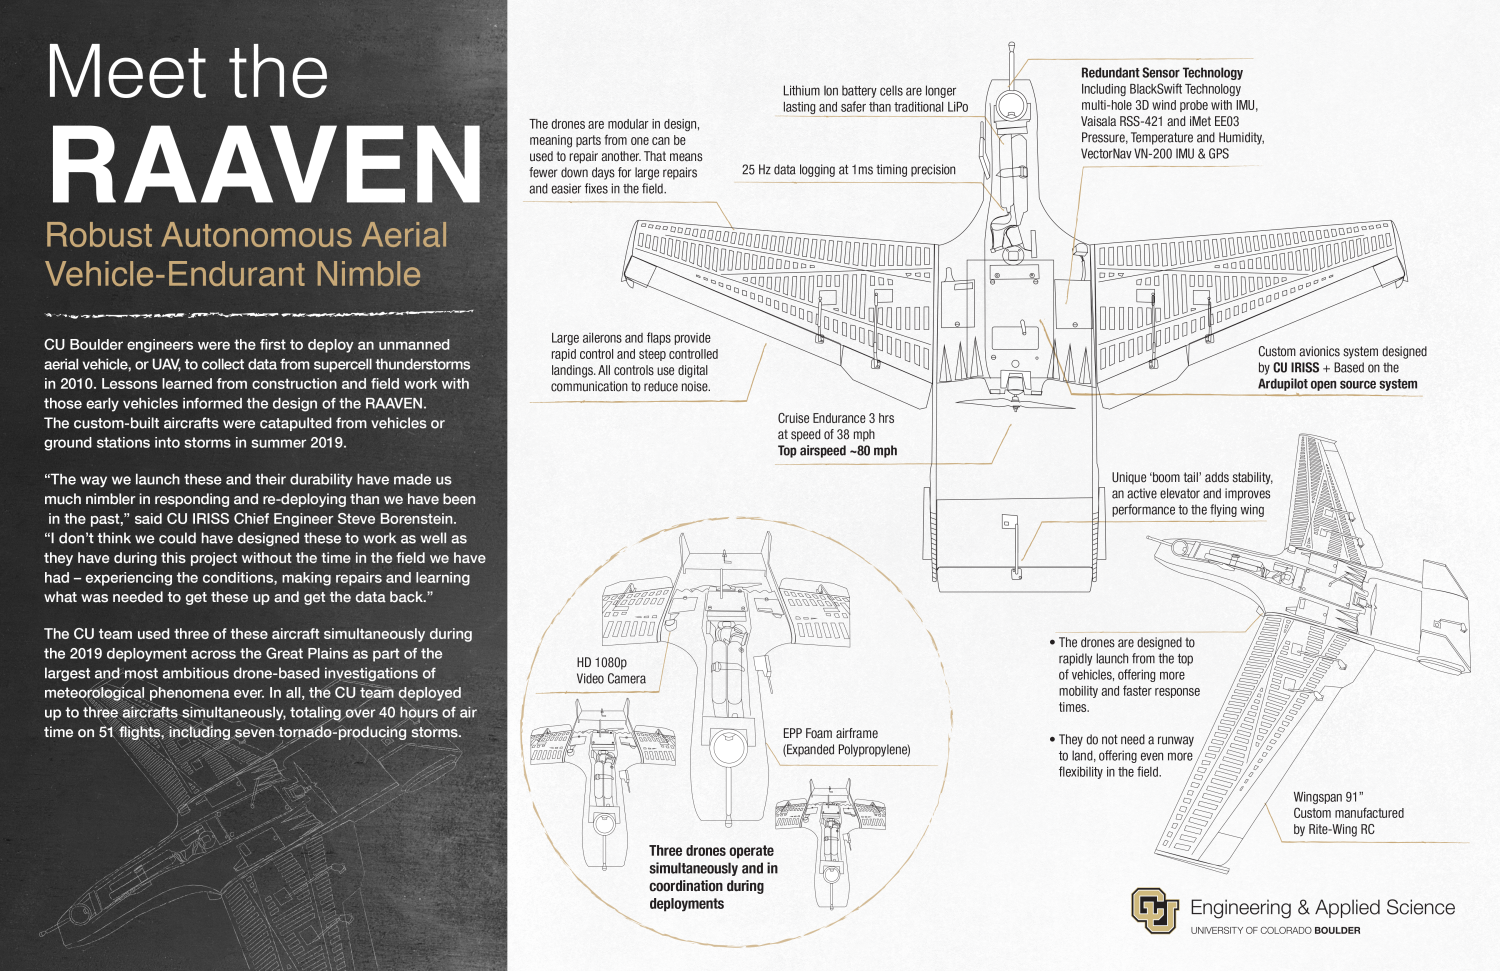 Info graphic showing the specifications of the RAAVEN